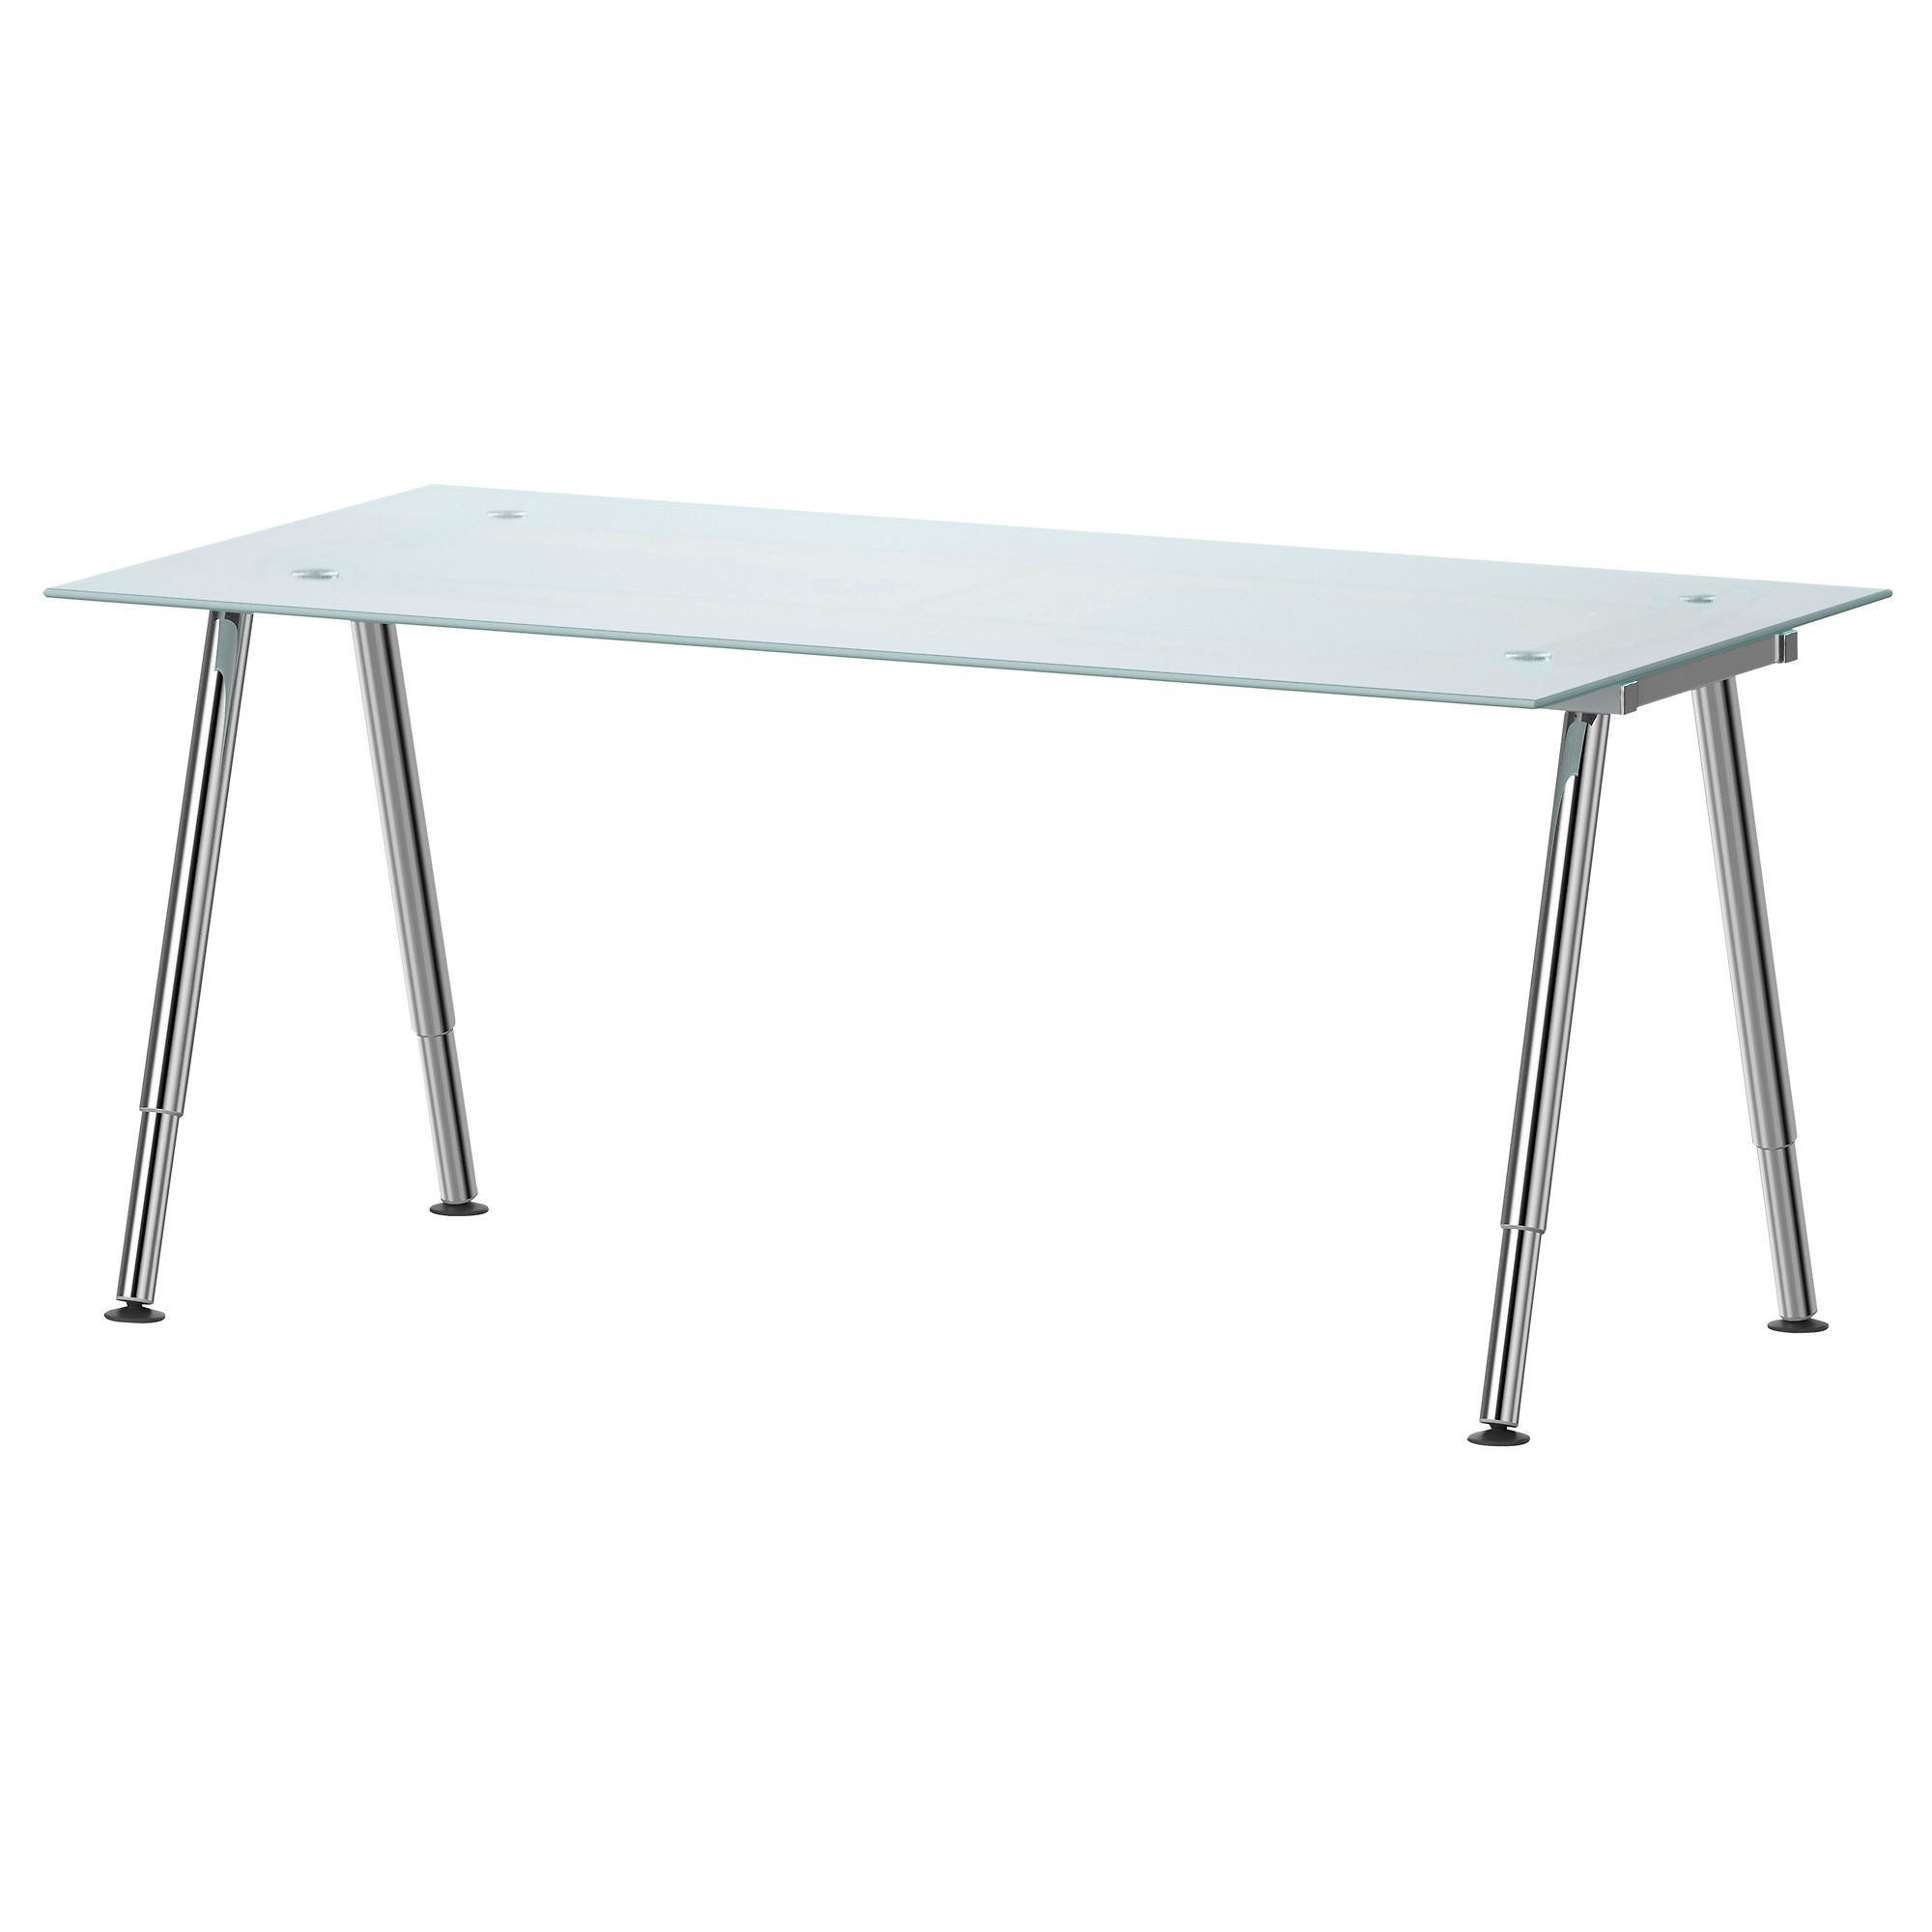 Us Furniture And Home Furnishings Home Office Furniture Ikea Office Desk Ikea Galant Desk